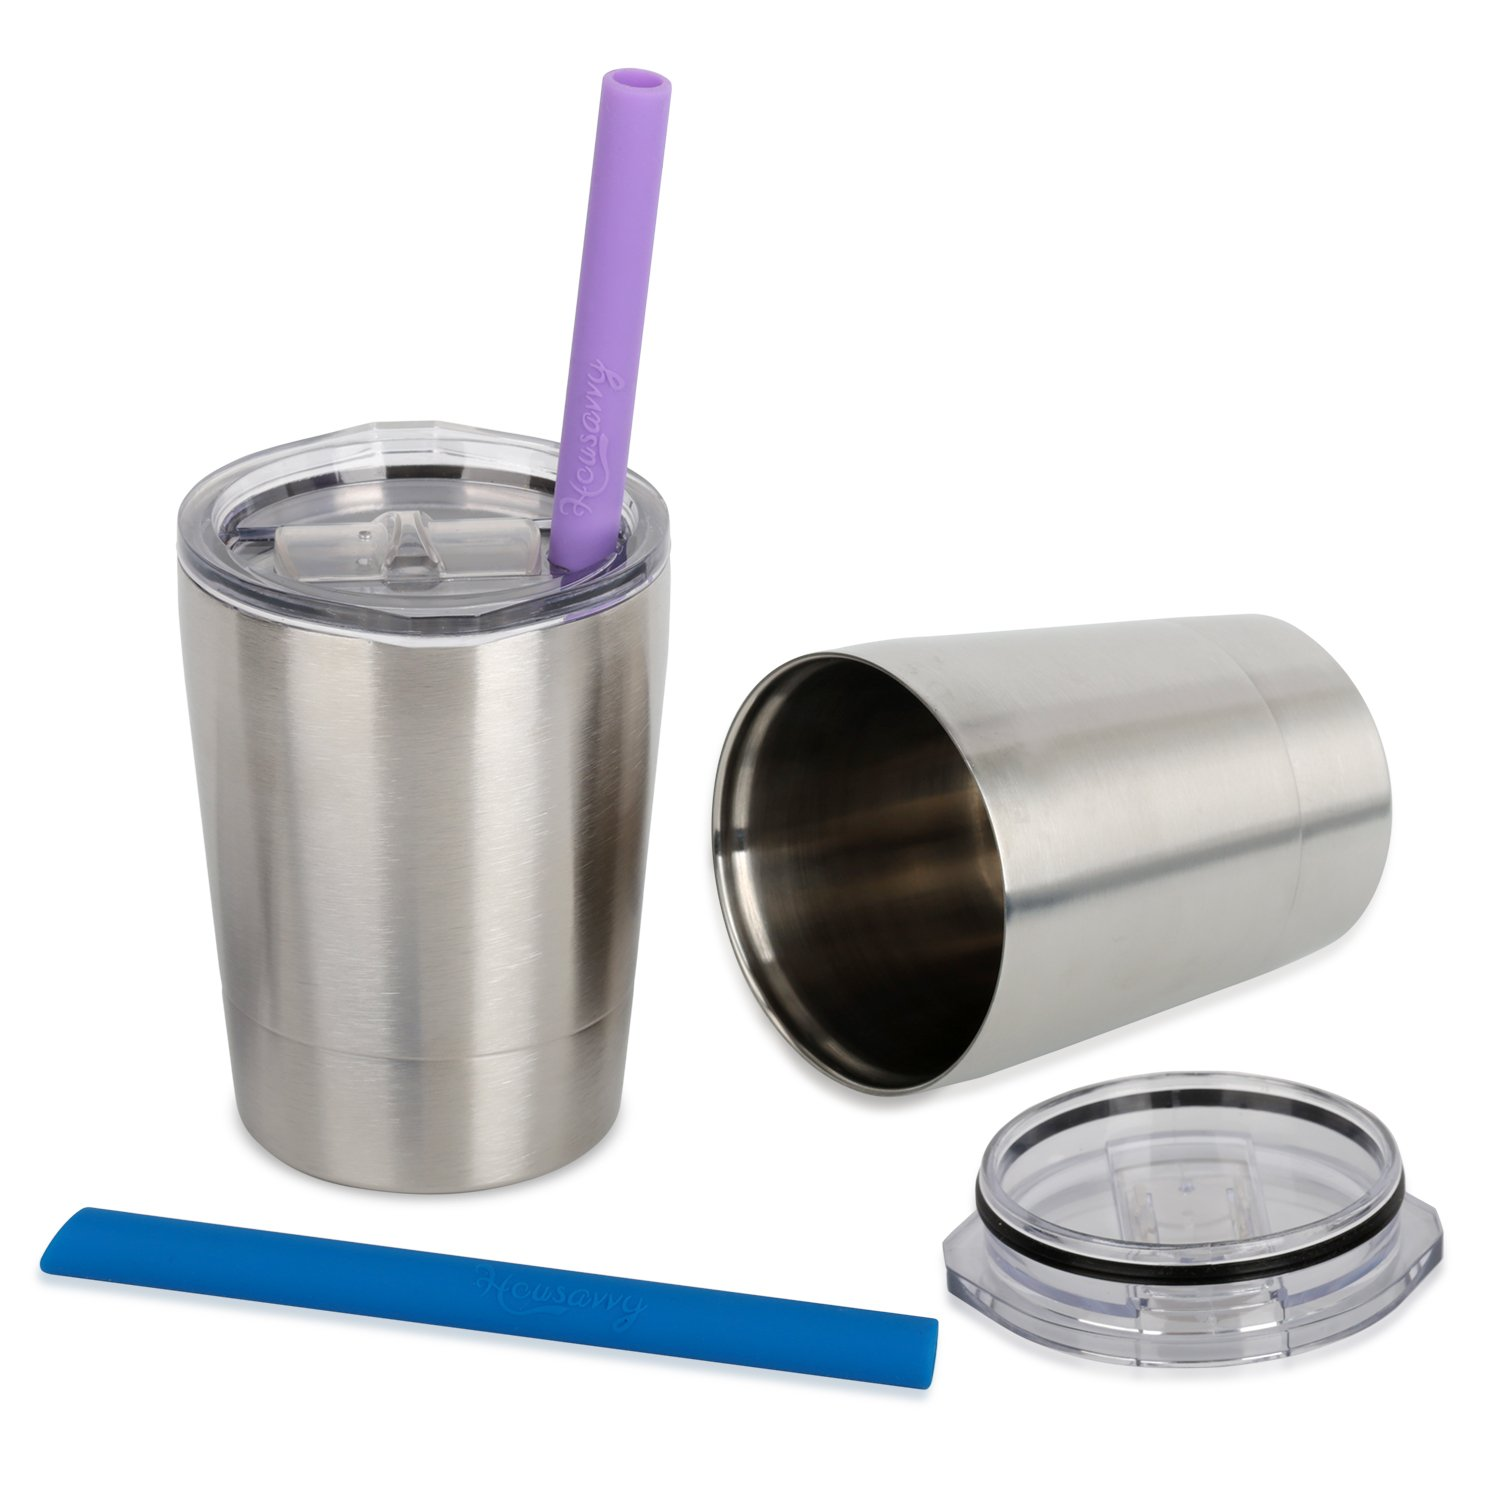 Housavvy Stainless Steel Cups